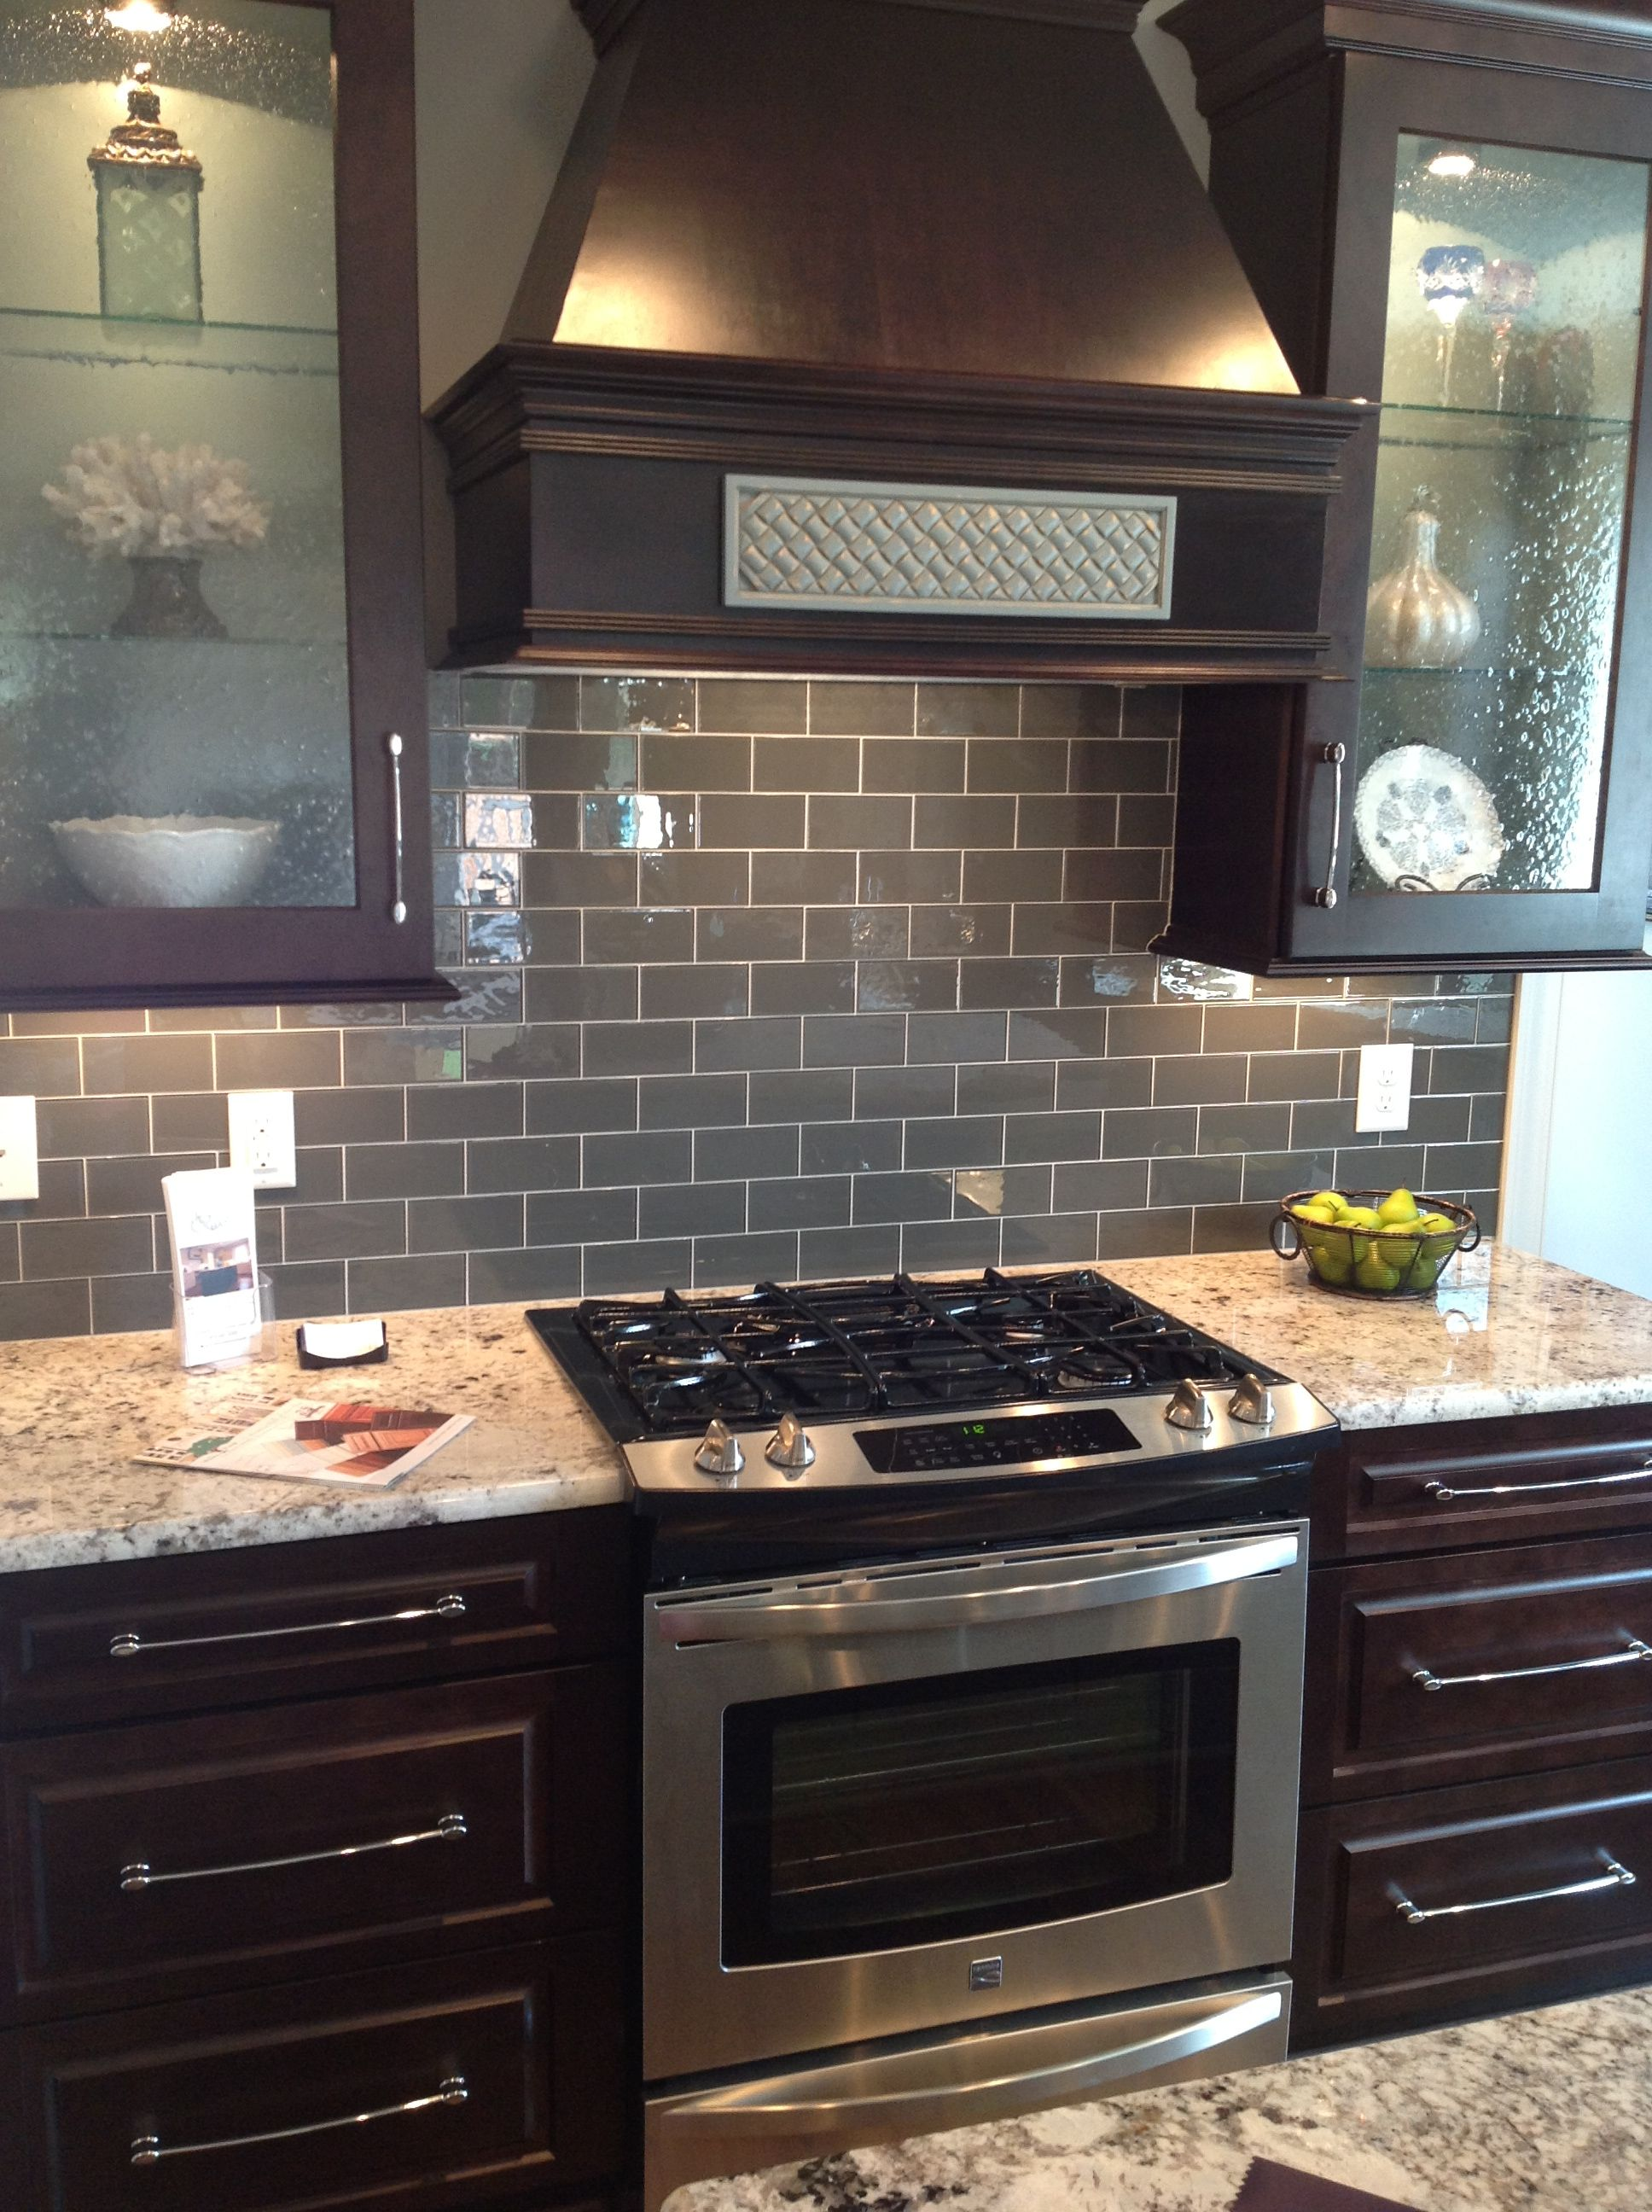 Ice Gray Gl Subway Tile Backsplash With Dark Brown Cabinets And Stainless Steel Liances